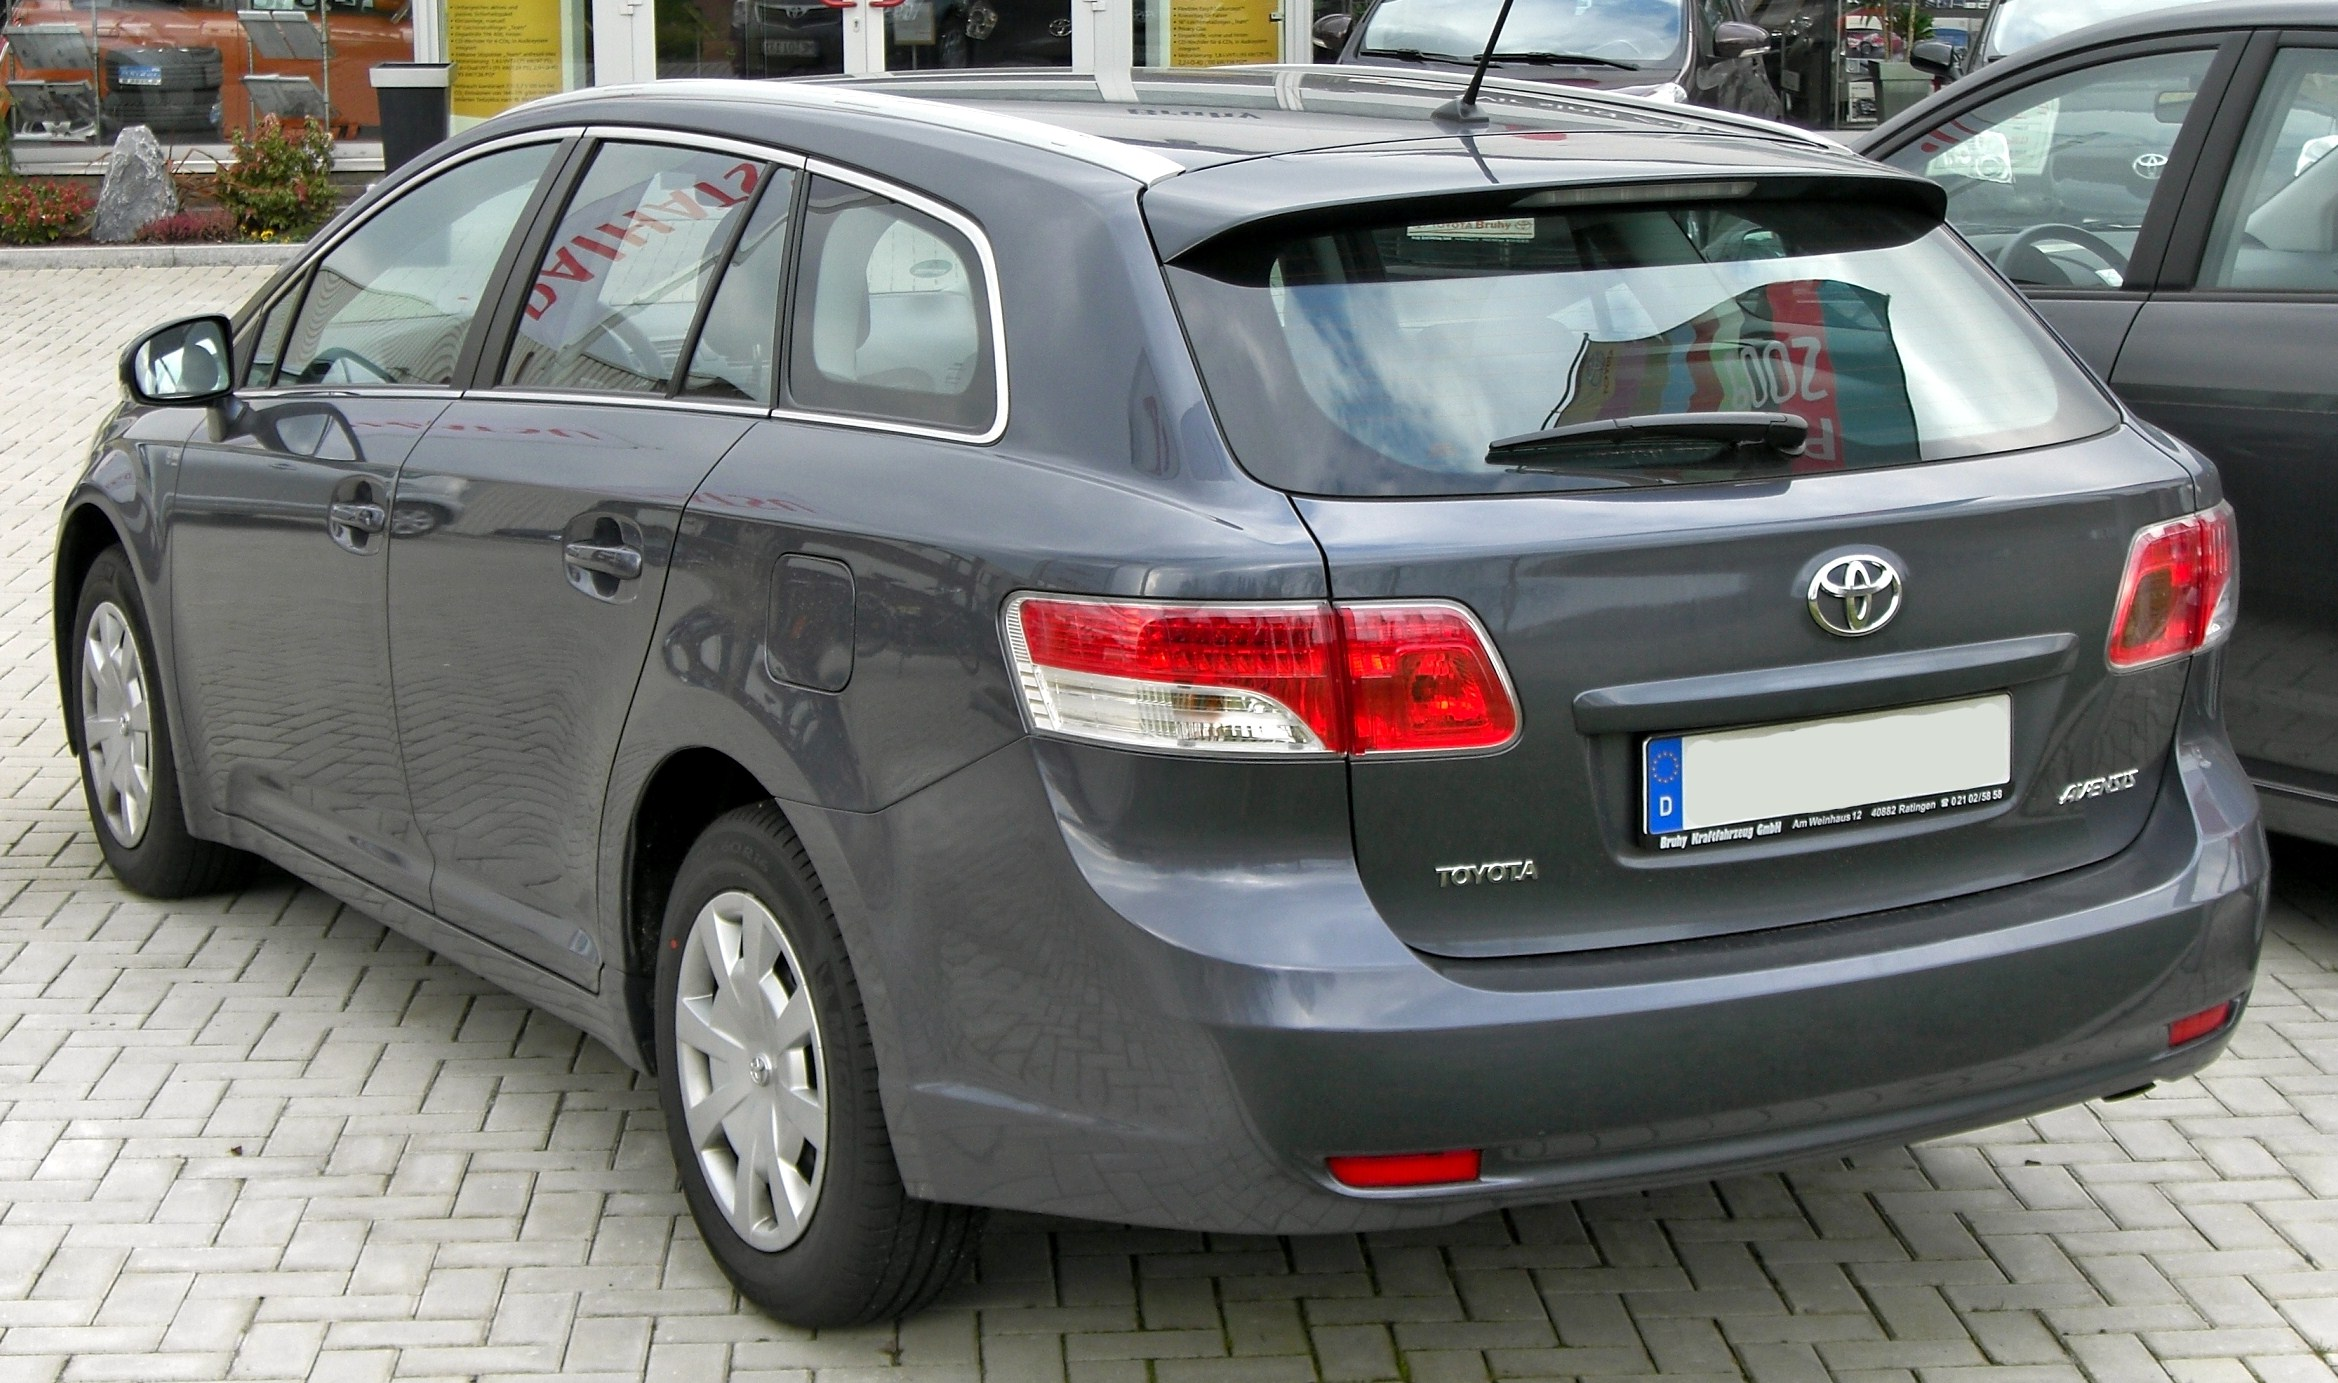 Toyota Avensis Wikipedia Camry Le Engine Diagram Of 2012 Wagon Pre Facelift